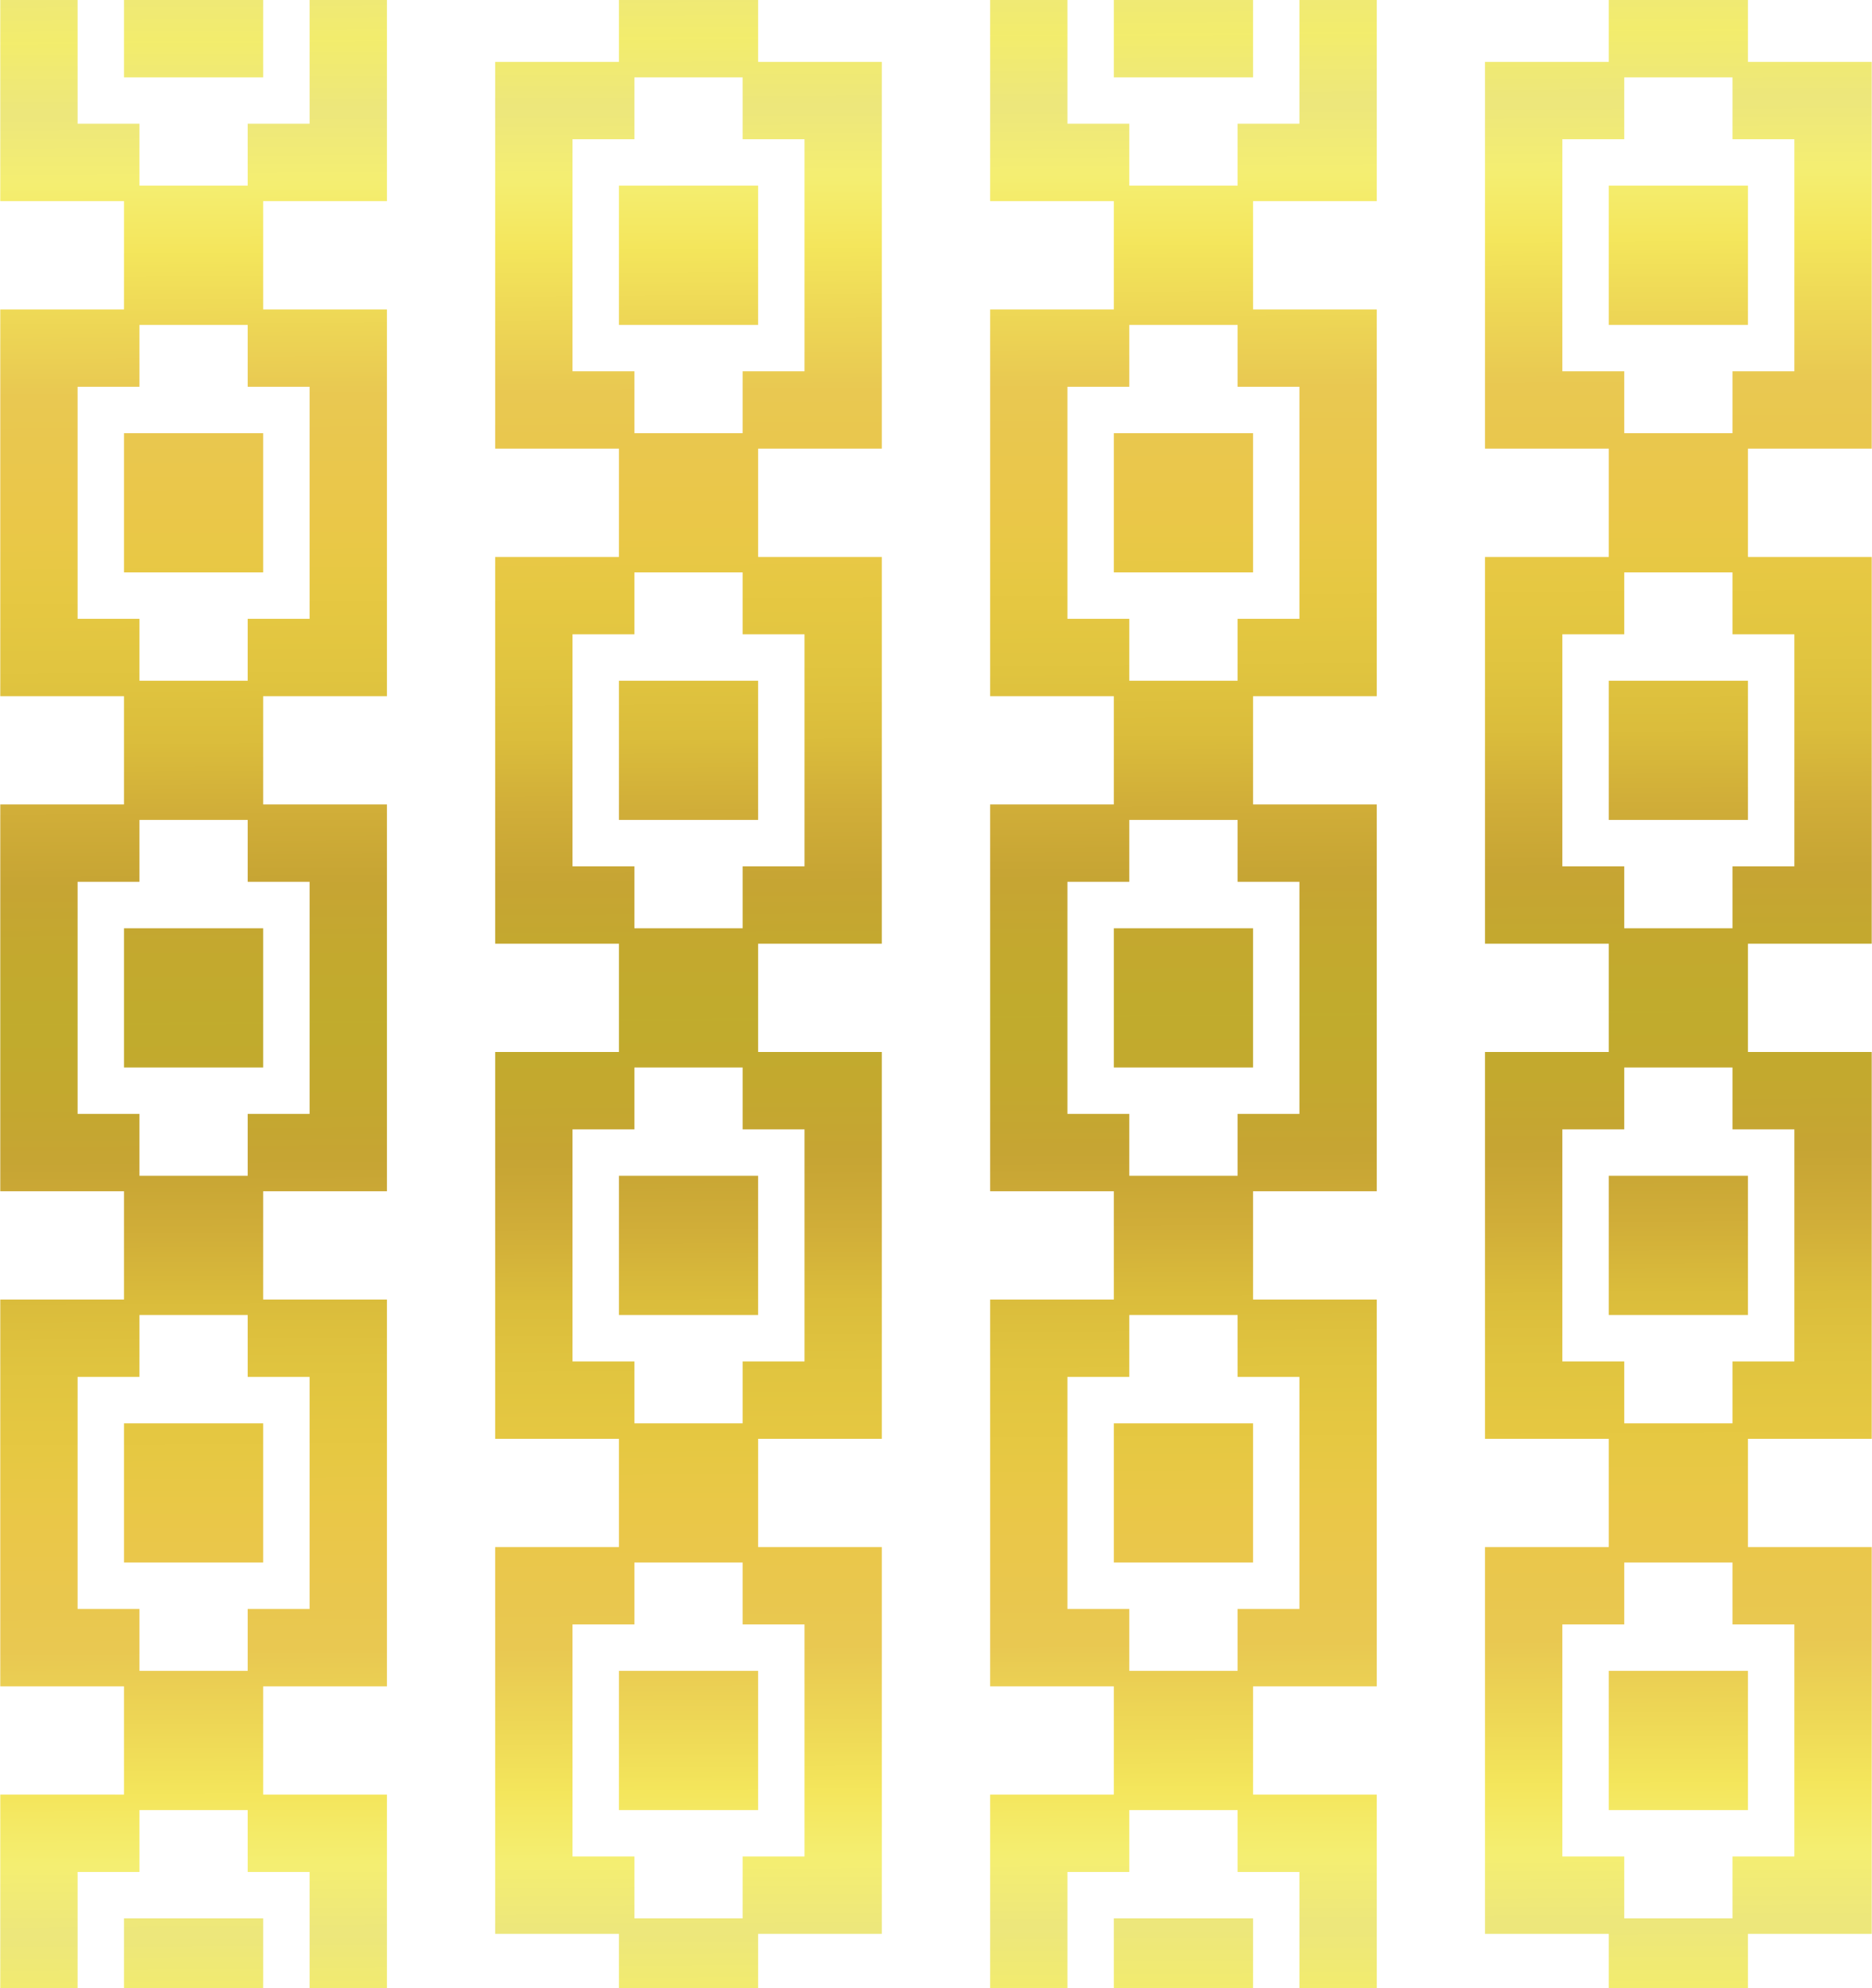 Square pattern png. Gold icons free and